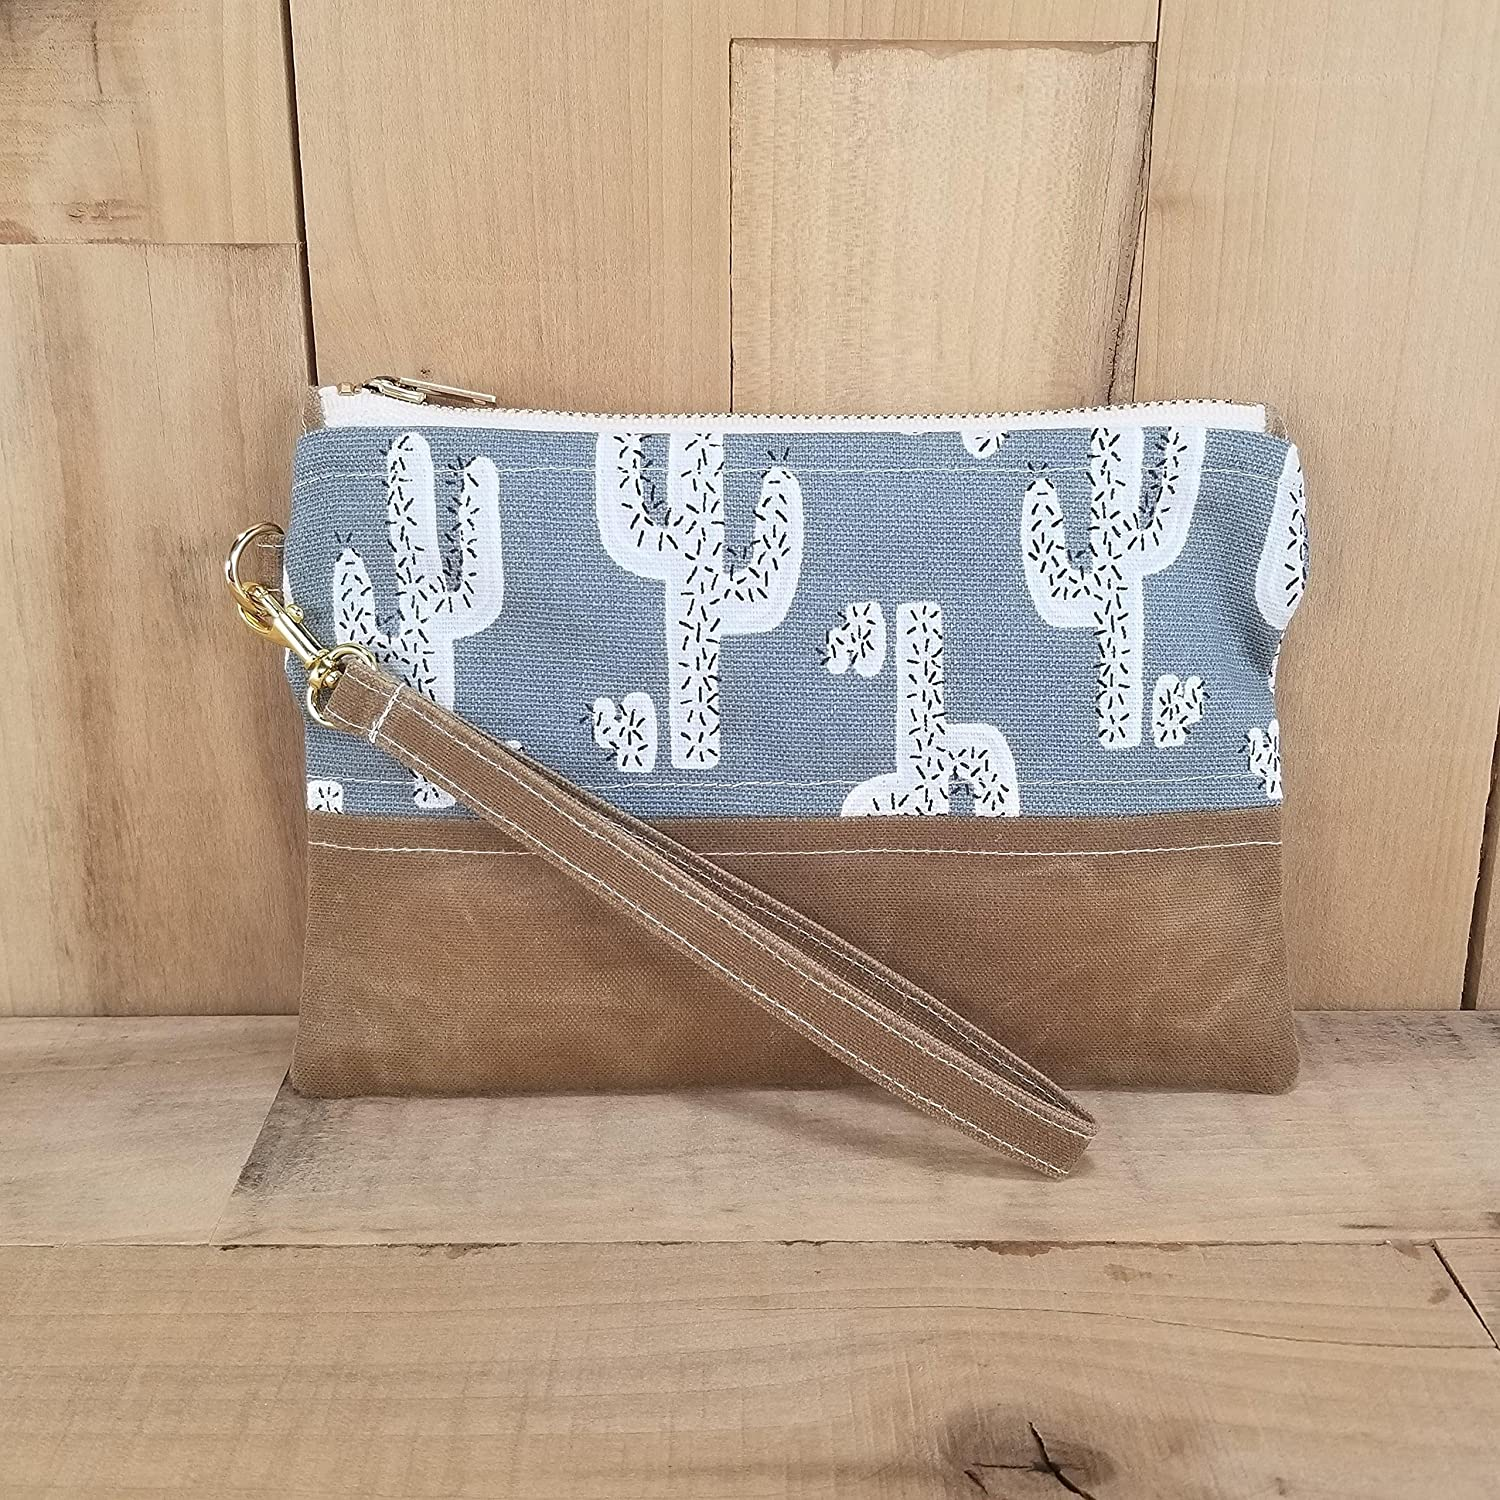 Cactus Print with Waxed Canvas Bottom Wristlet Waxed Canvas Wristlet Cactus Wristlet Wristlets for Women Clutch Bag Cactus Clutch Bag